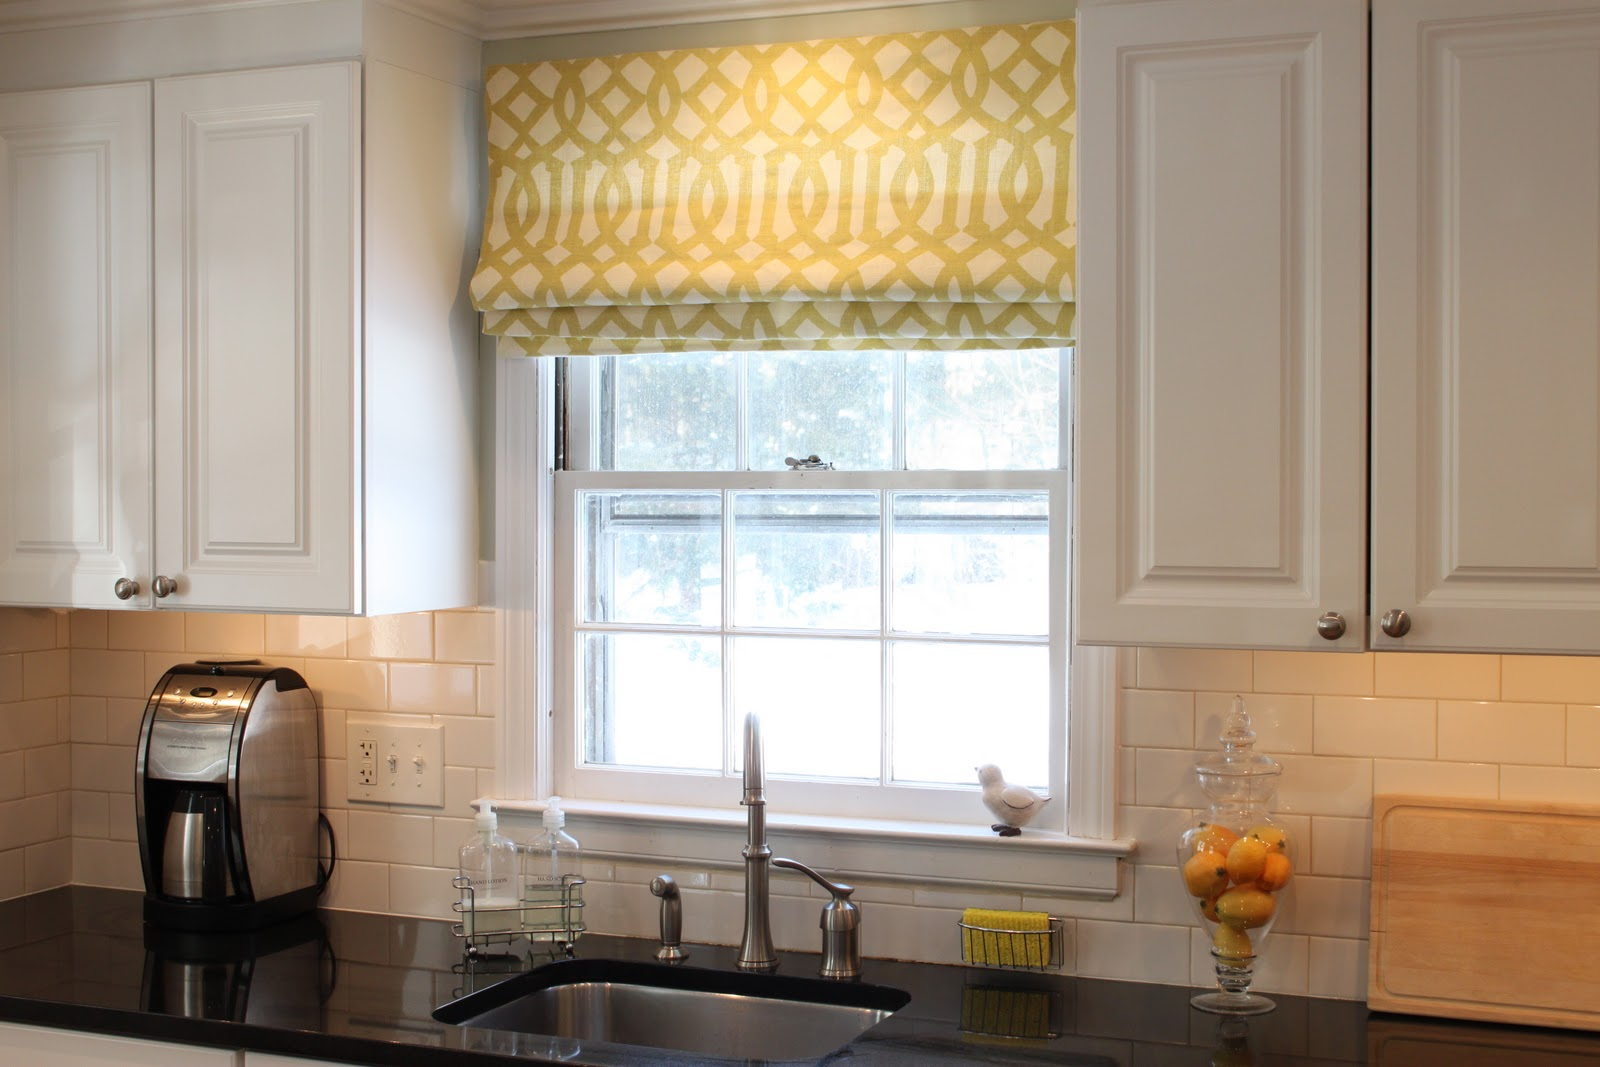 Window treatments by melissa window treatment style education roman shades - Window treatment ideas for kitchen ...